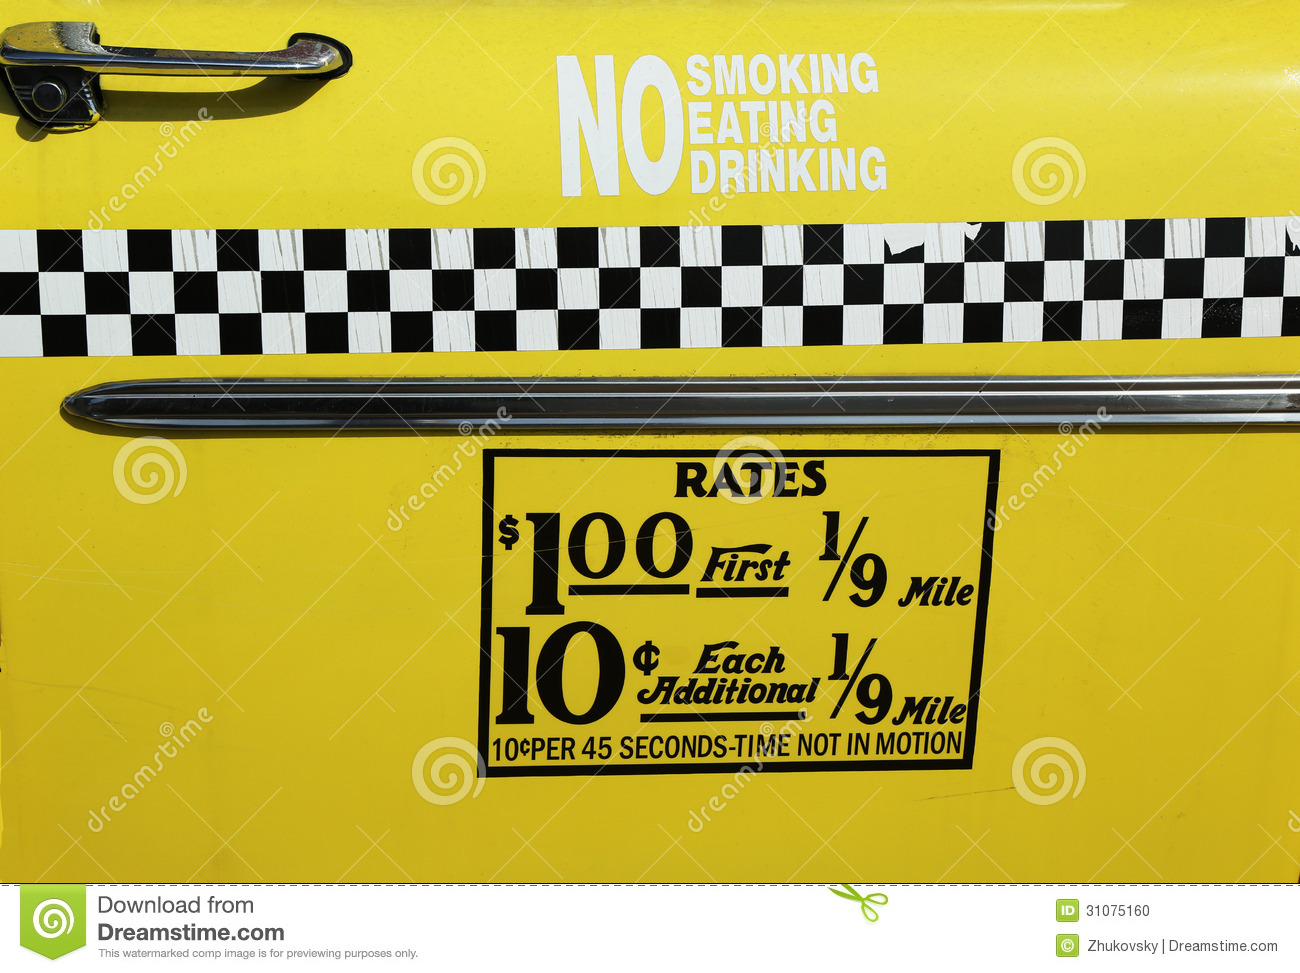 Taxi rates in ny: who discovered crude oil.